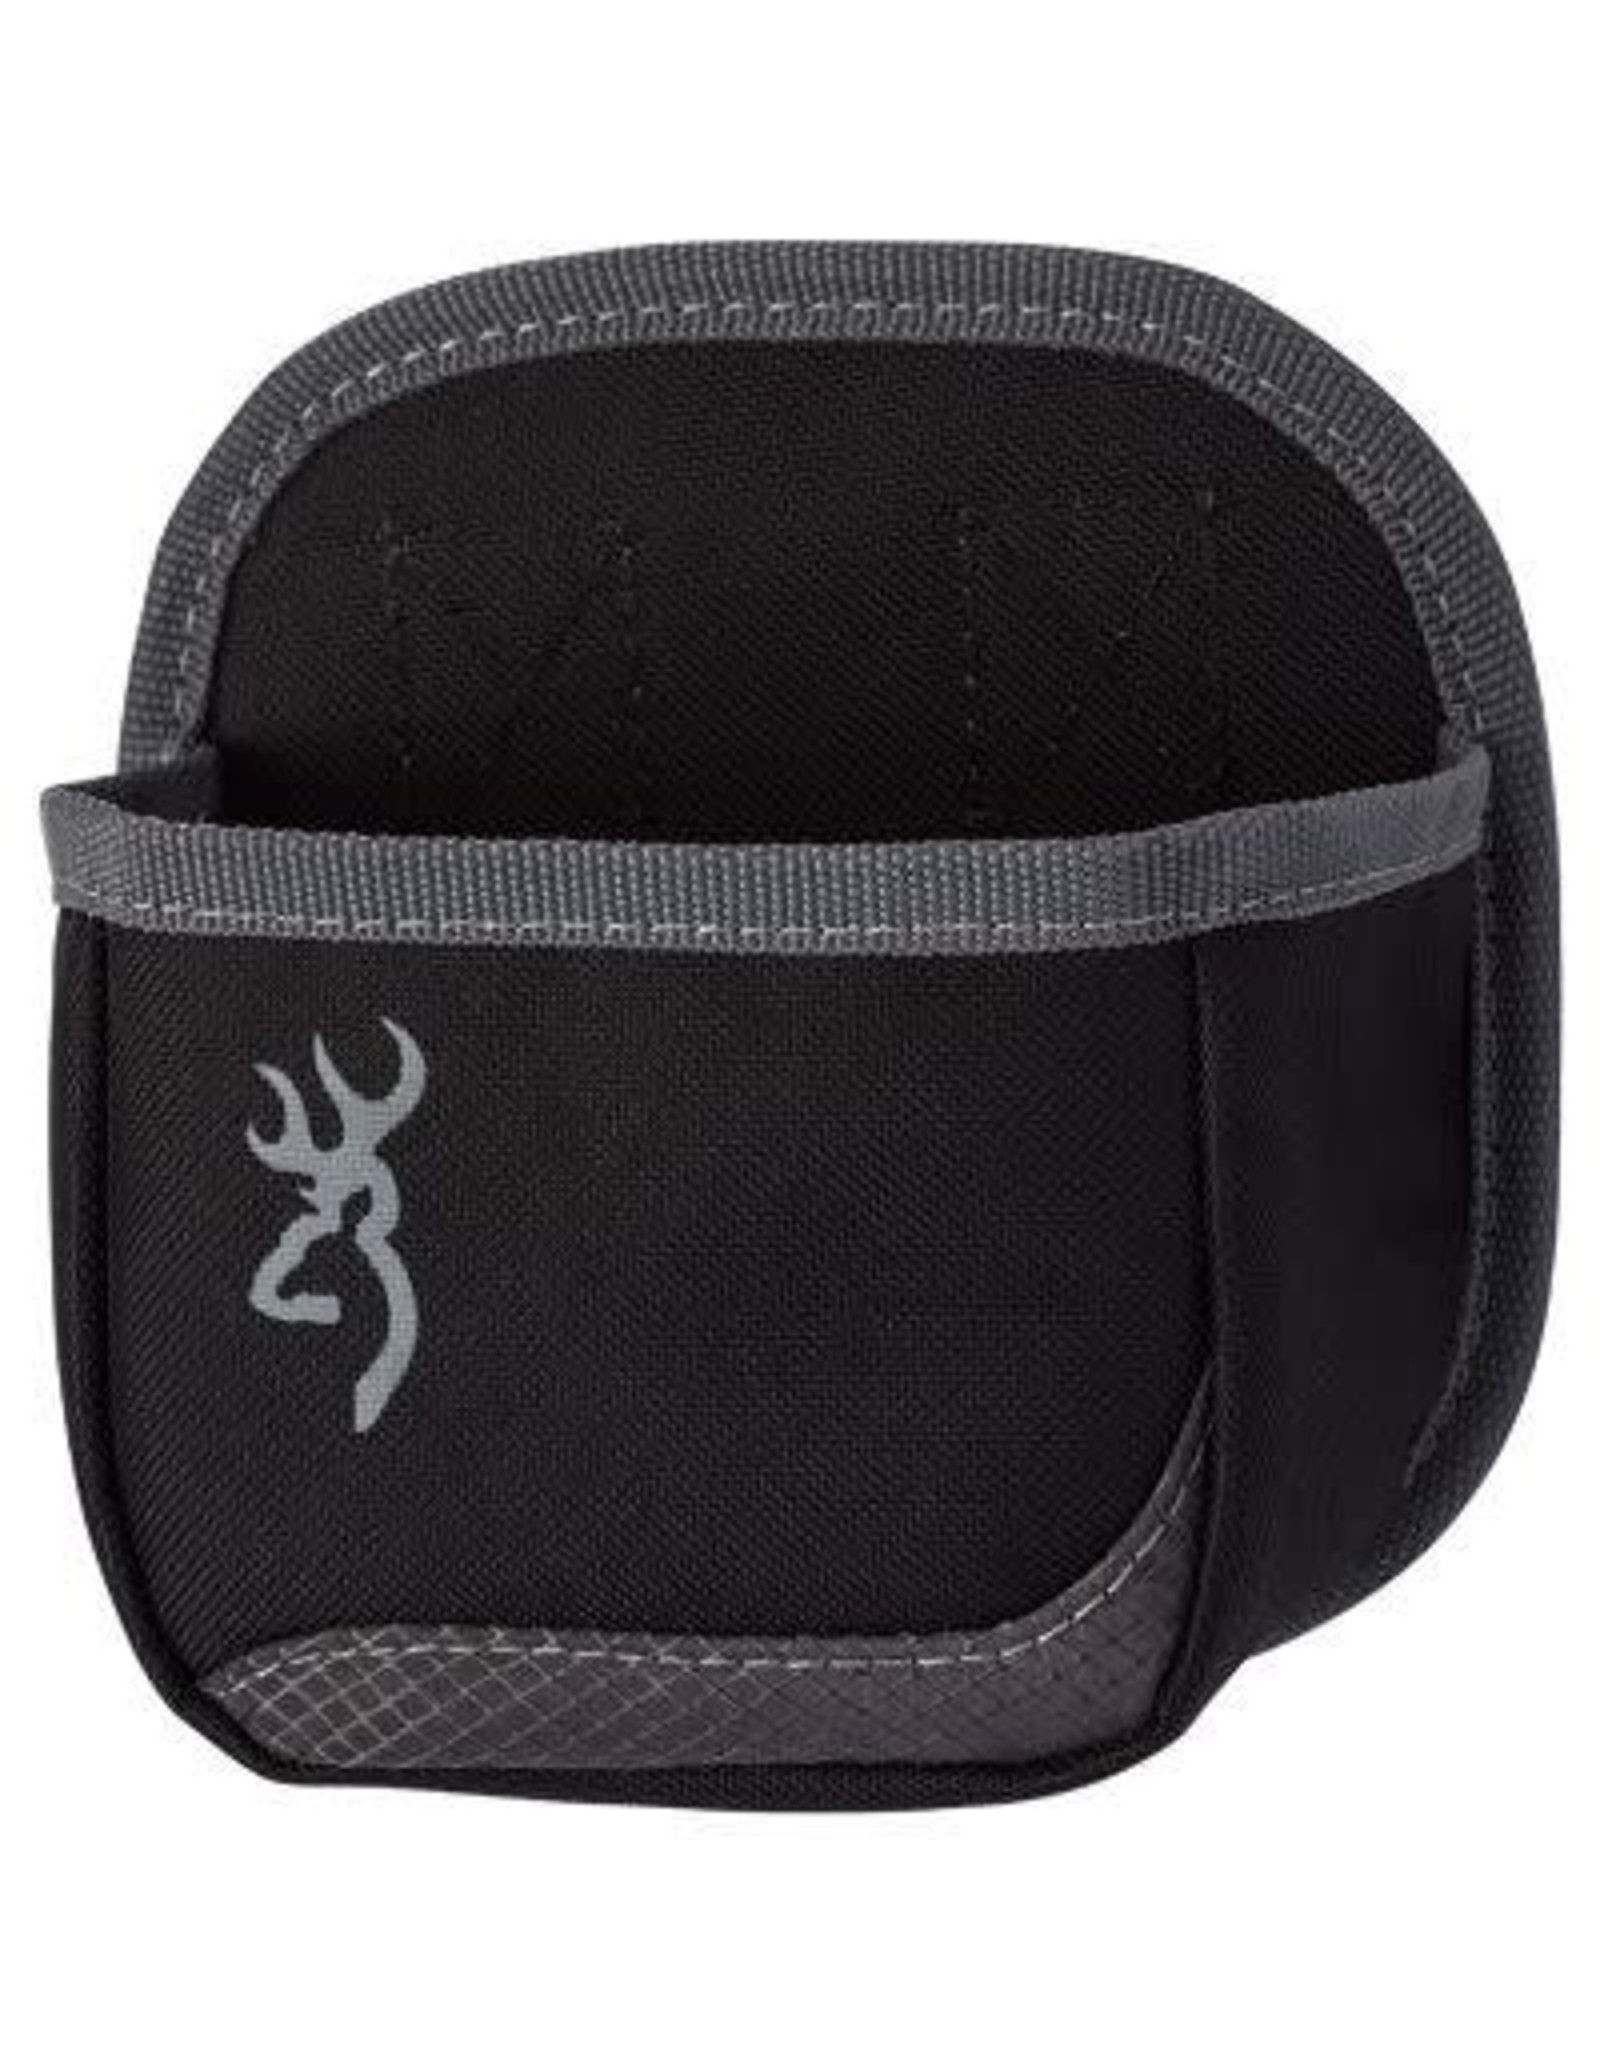 Browning Browning Flash Shell Box Carrier - Black & Gray